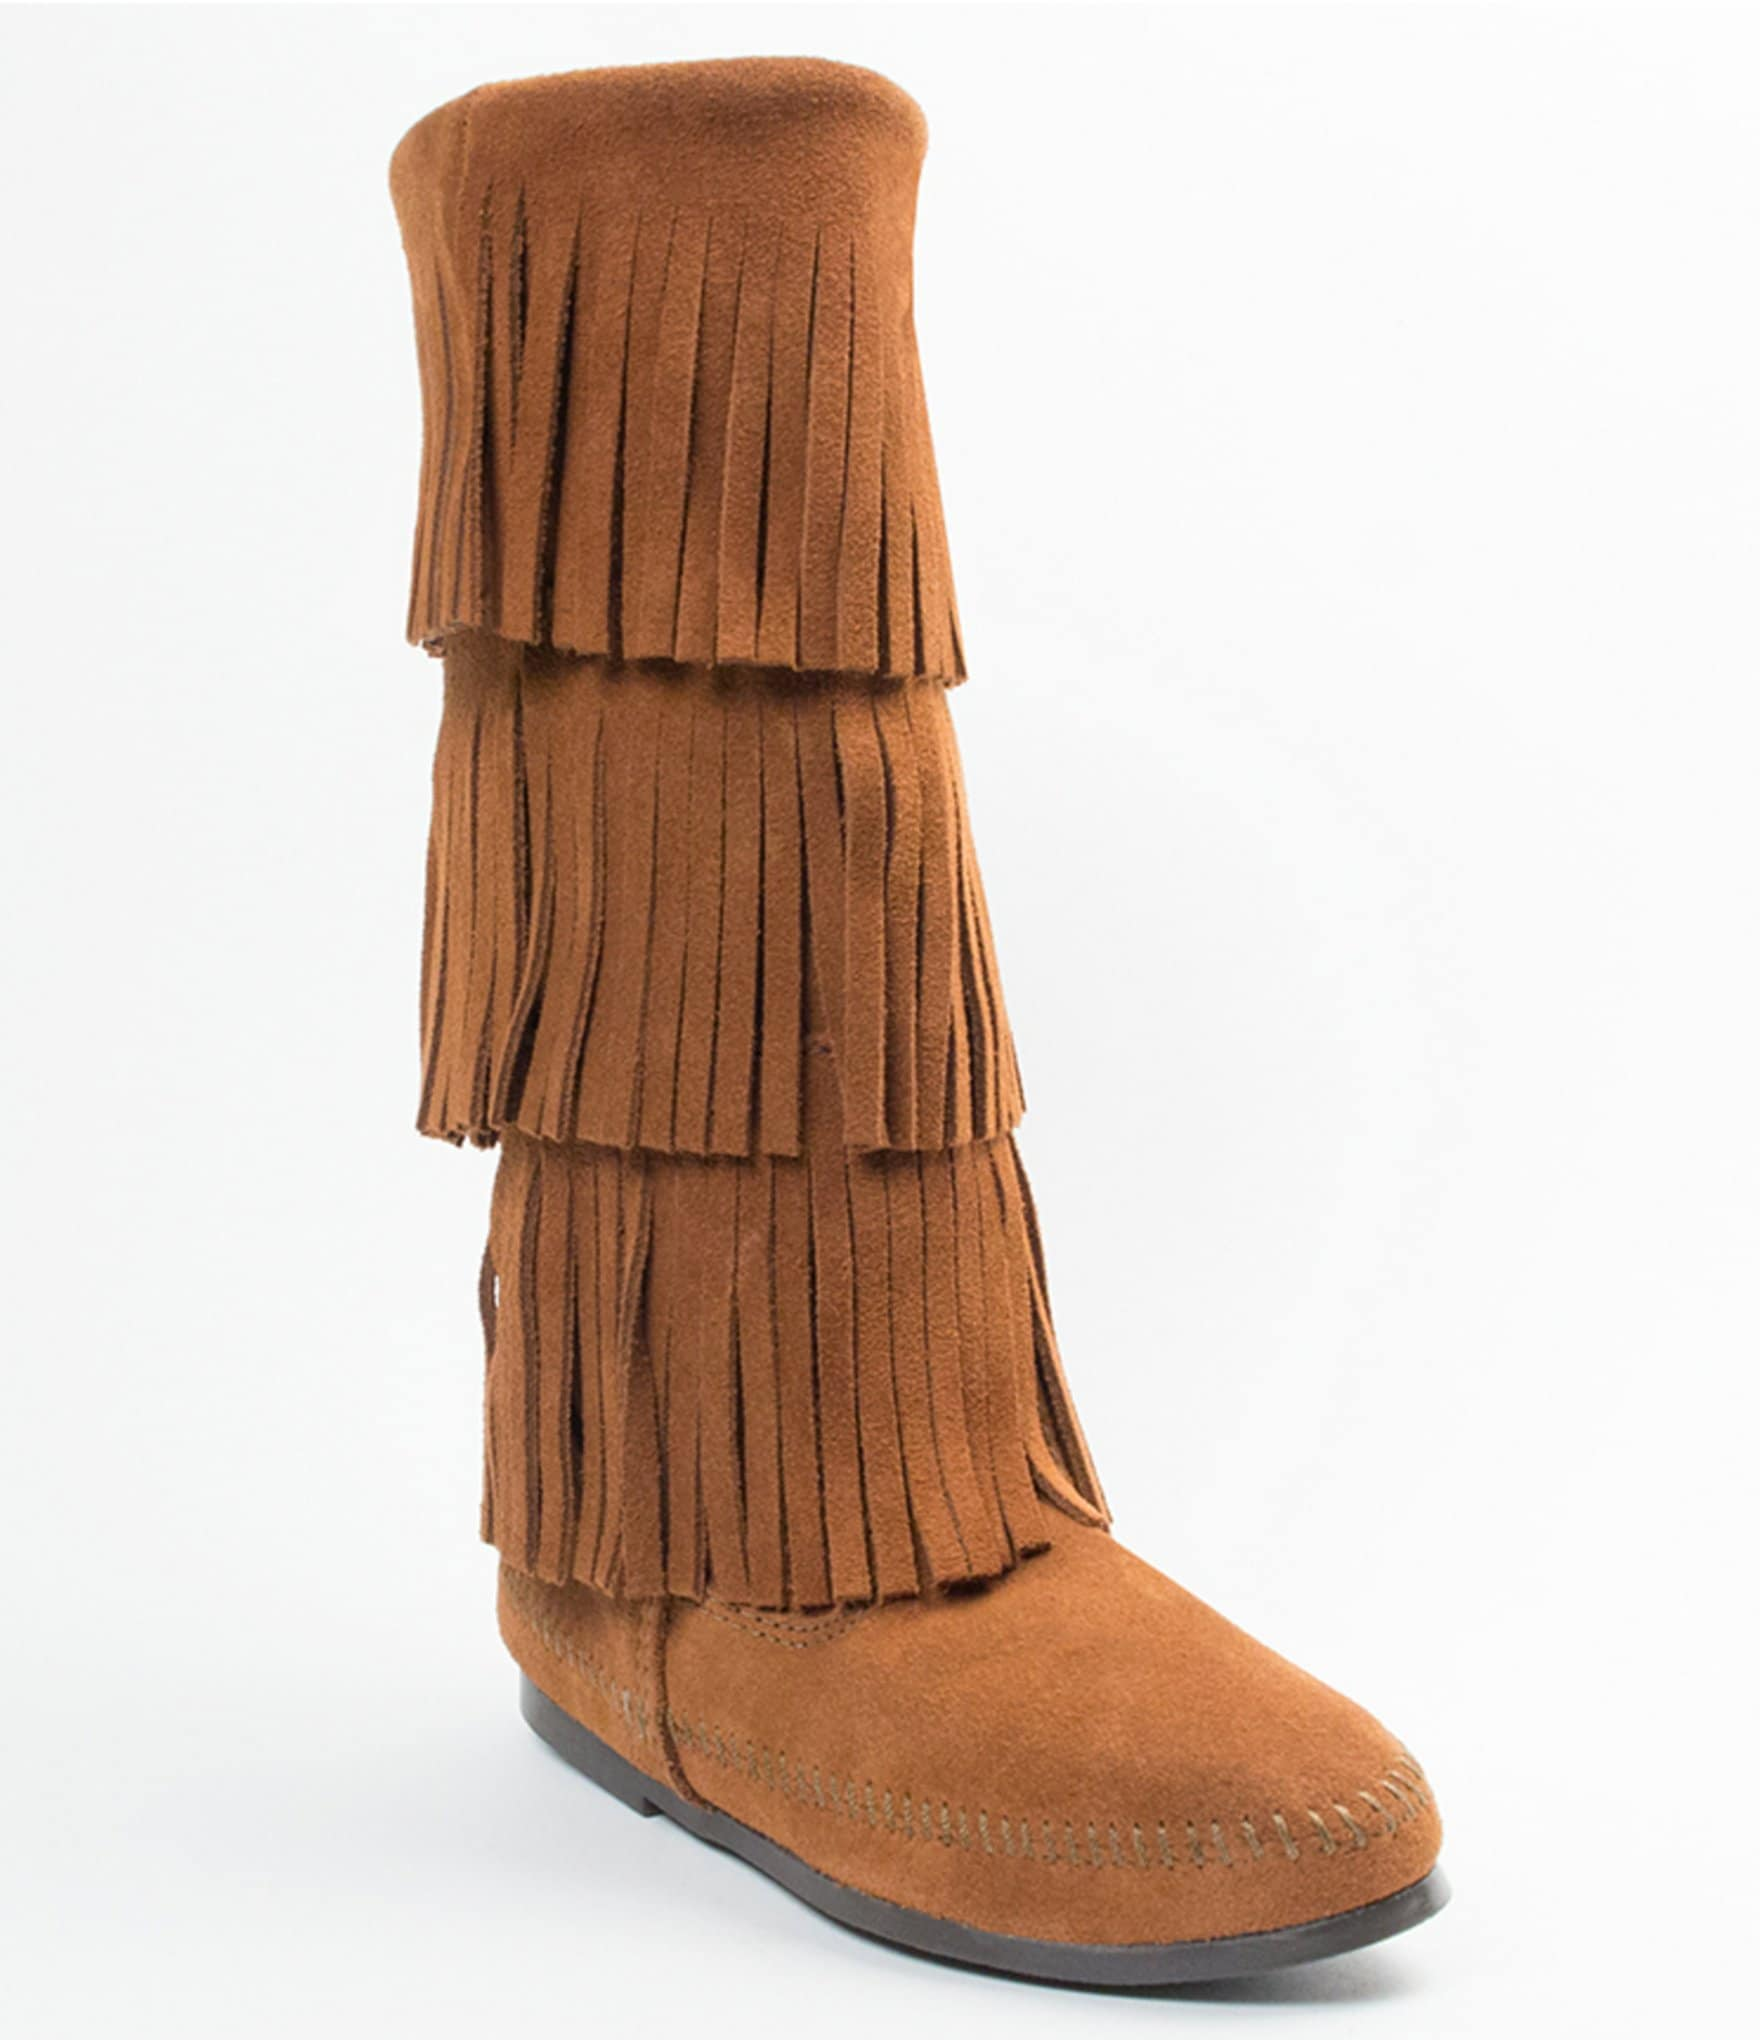 Minnetonka suede leather knee high tall lace up moccasin fringe boots - Minnetonka Suede Leather Knee High Tall Lace Up Moccasin Fringe Boots 46